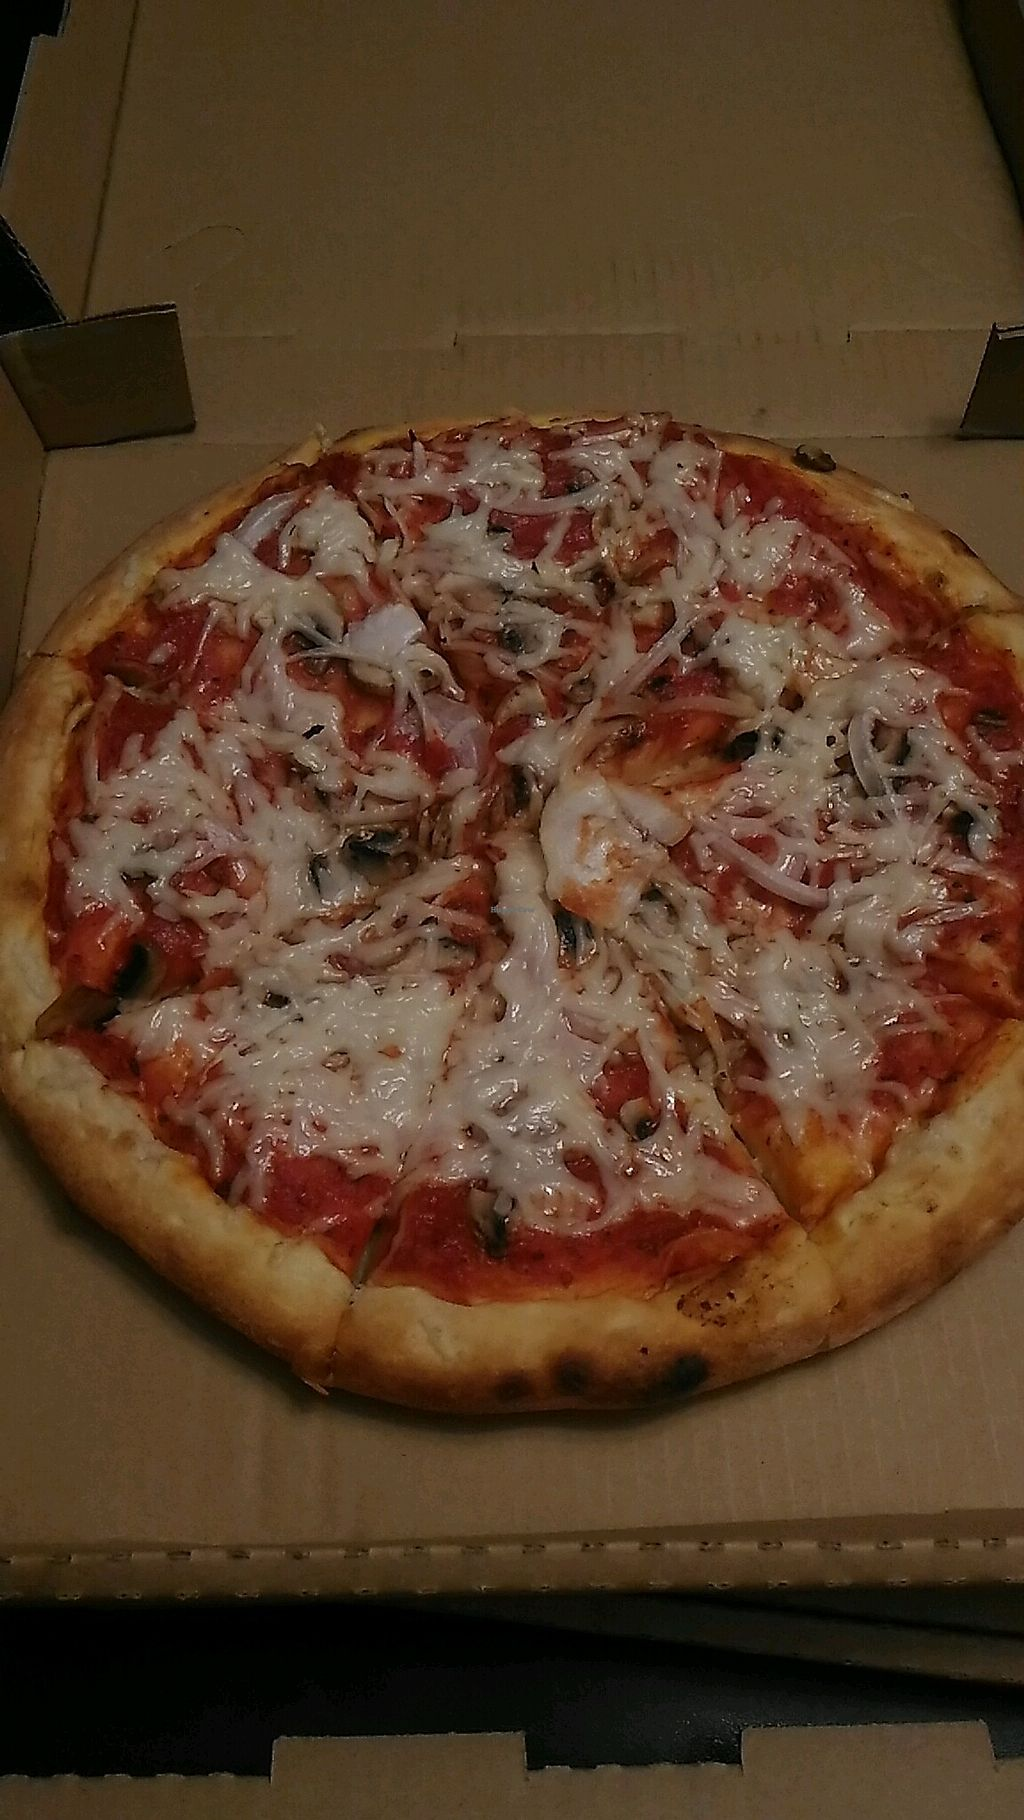 """Photo of Vegan Pizza  by <a href=""""/members/profile/QuothTheRaven"""">QuothTheRaven</a> <br/>pizza <br/> March 17, 2018  - <a href='/contact/abuse/image/38016/371590'>Report</a>"""